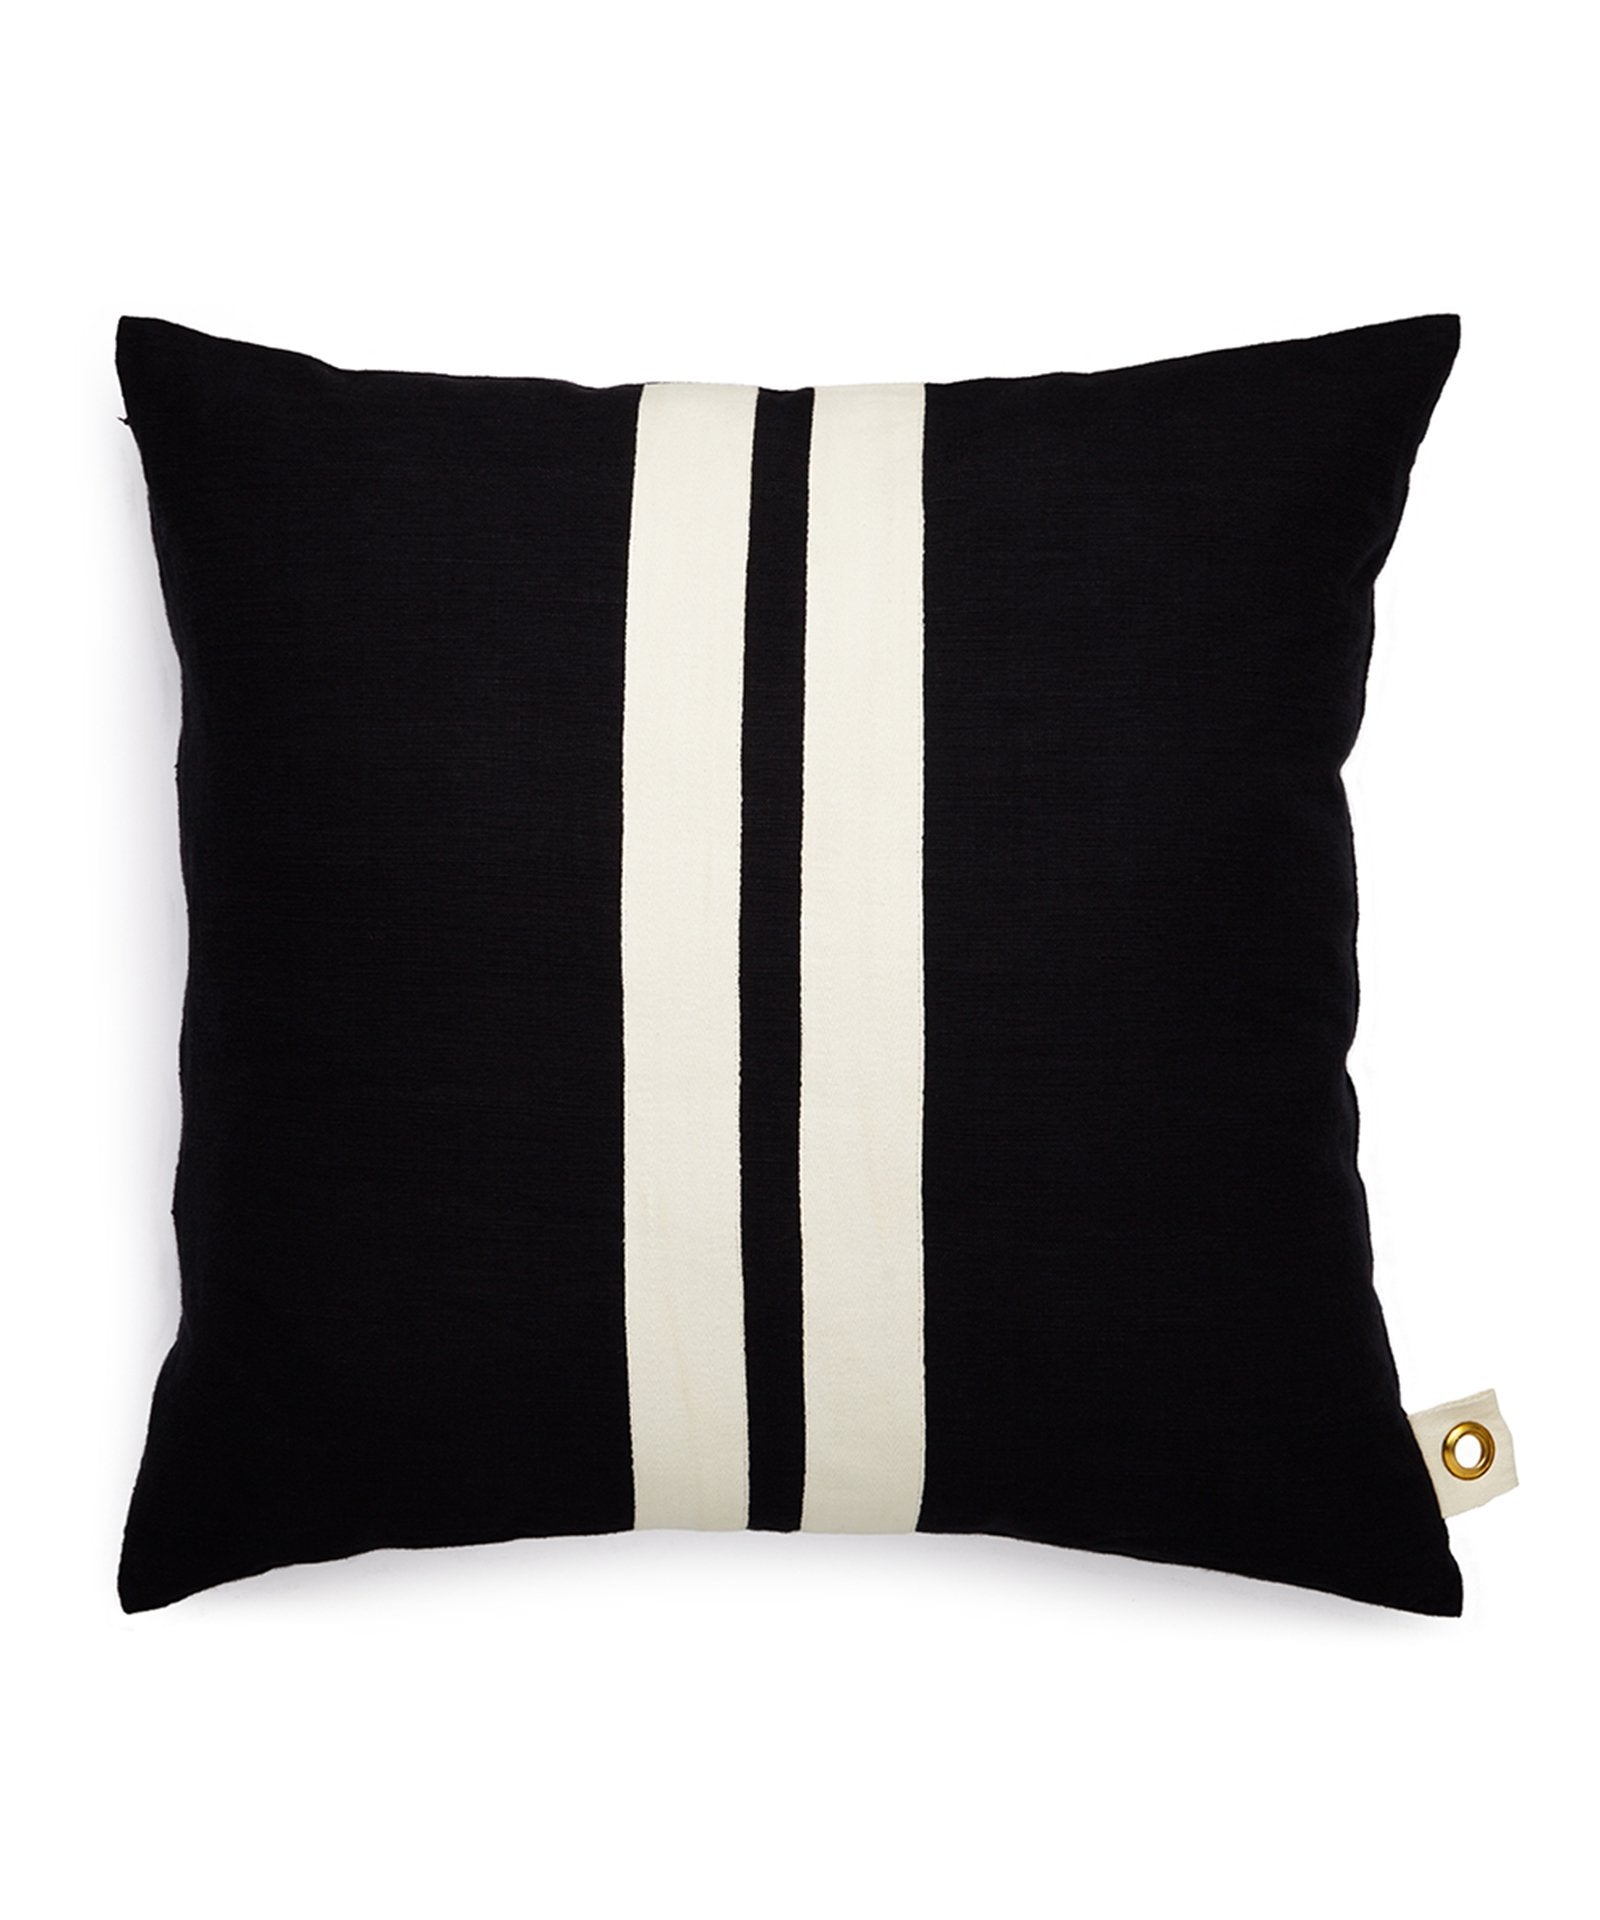 The Pillow Cover, Black